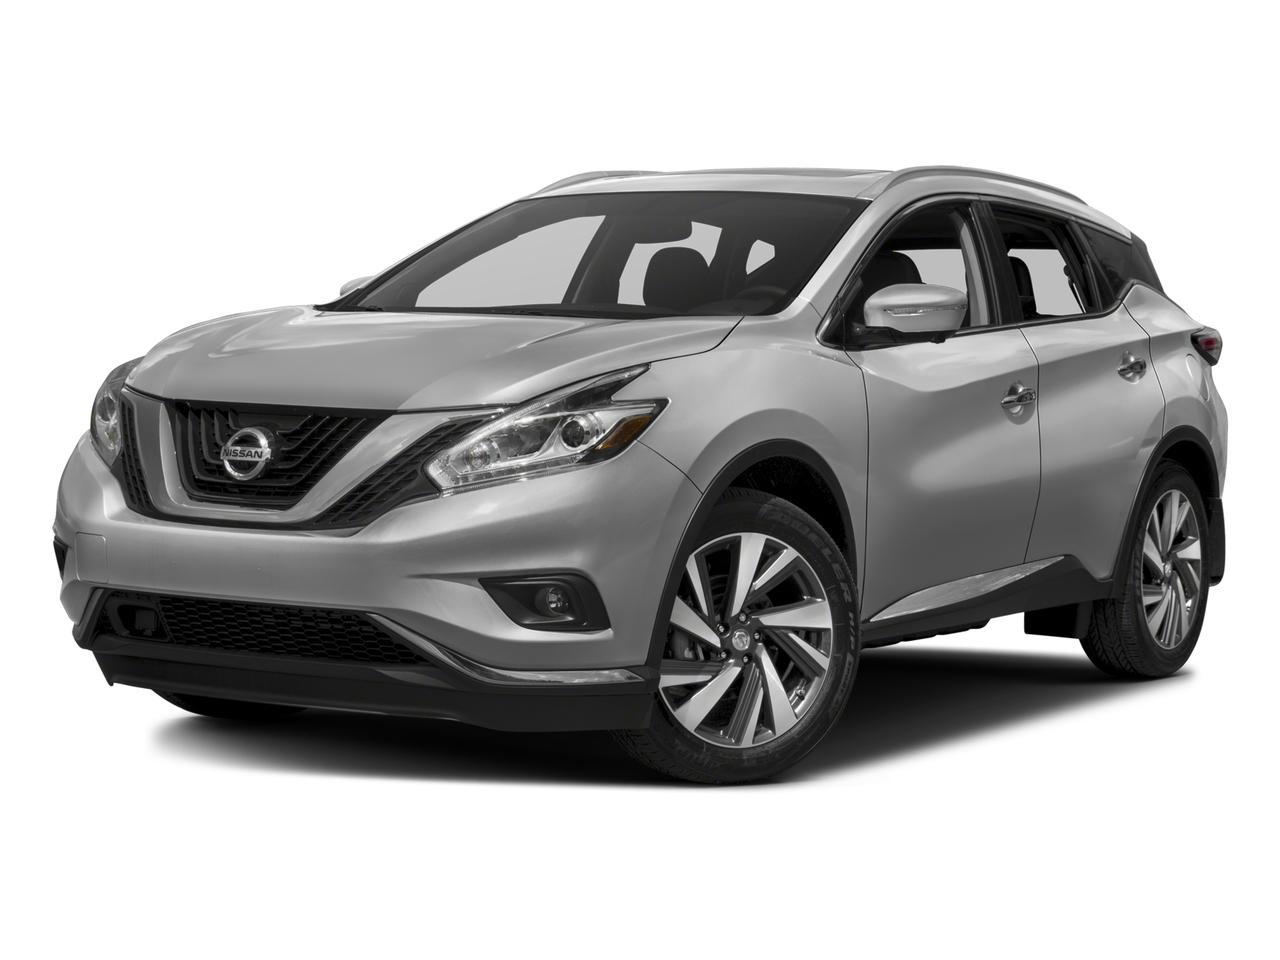 2017 Nissan Murano Vehicle Photo in Nashua, NH 03060